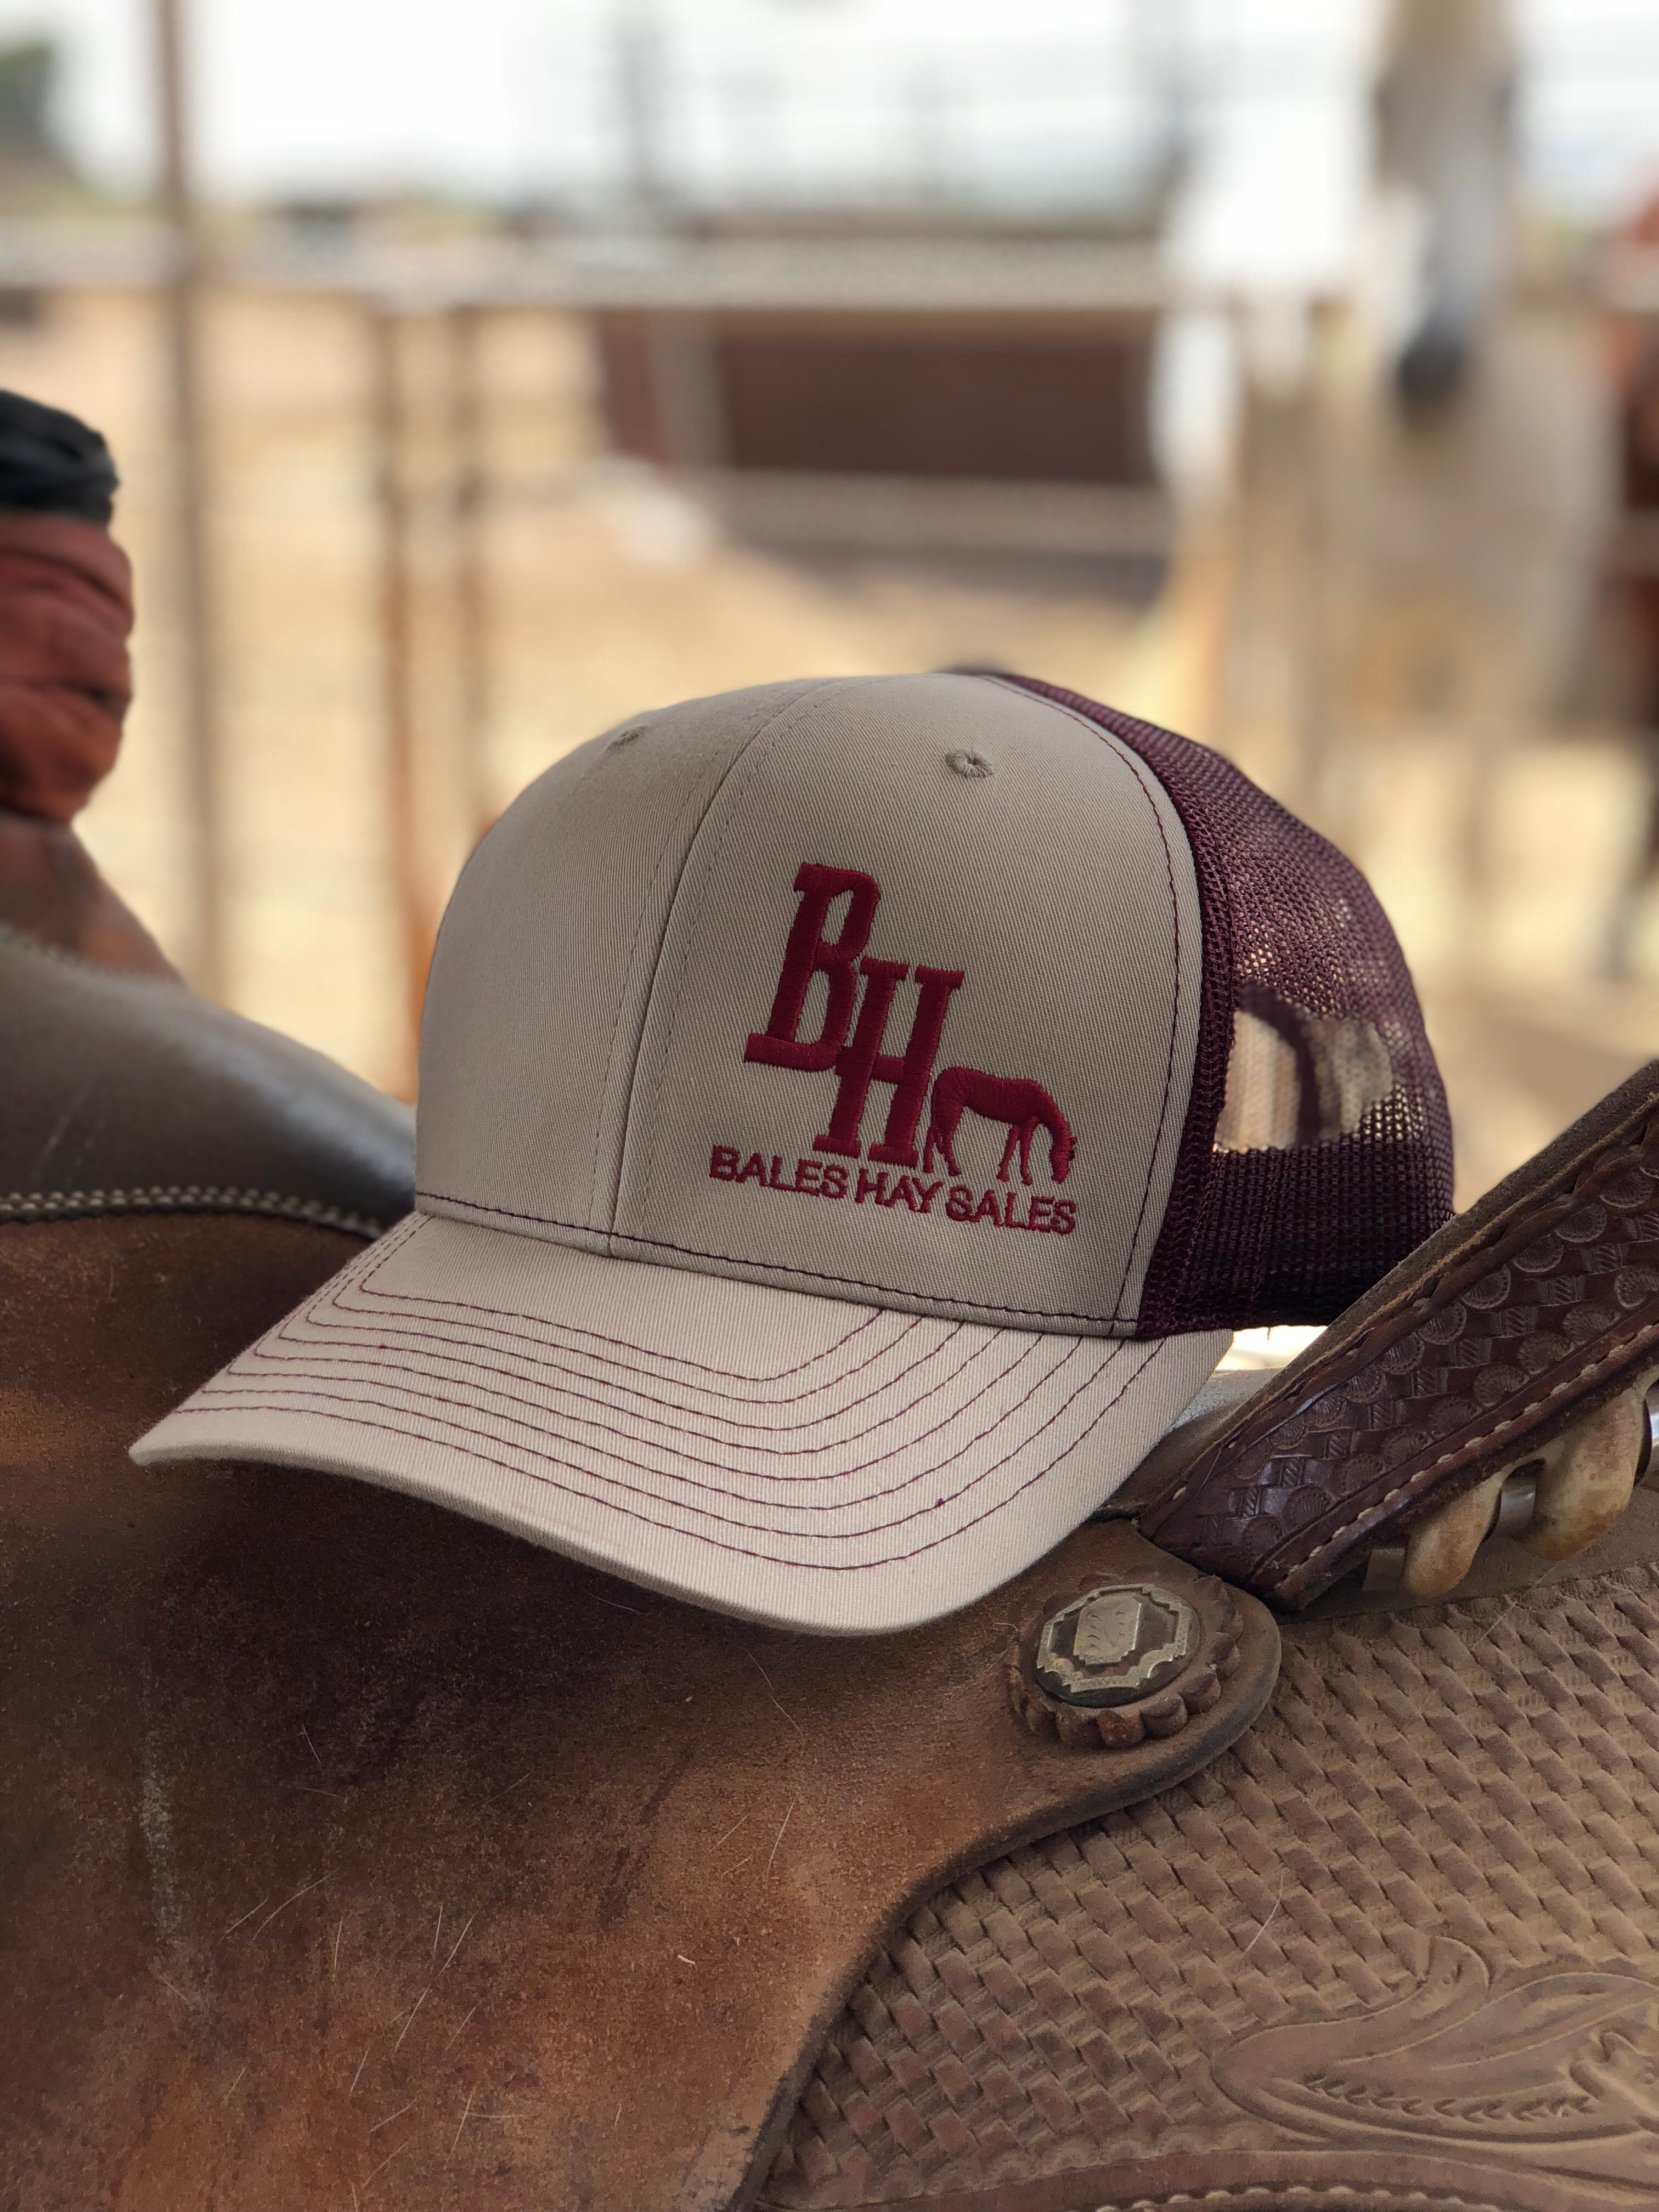 The BH Horse Trucker Hat